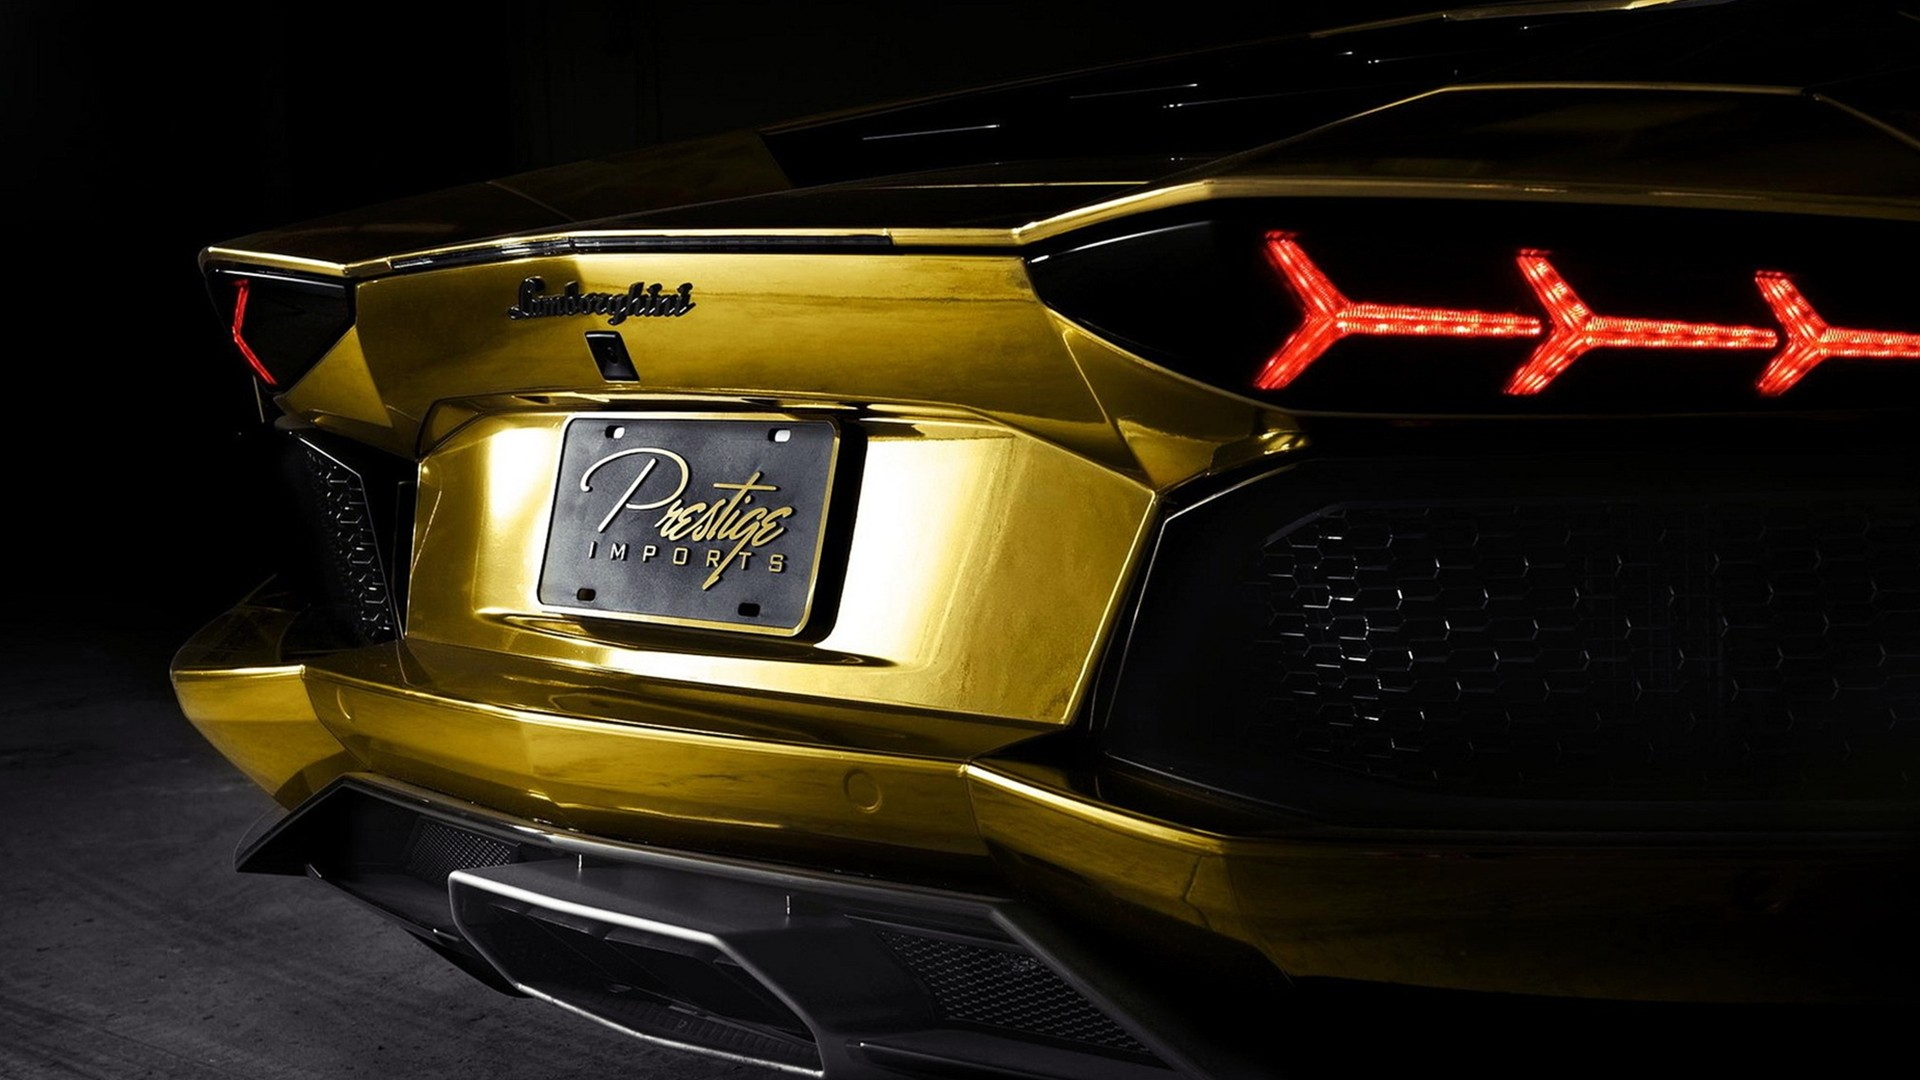 Cool Wallpaper Mac Lamborghini - prestige-imports-yellow-lamborghini-aventador-taillights_wallpapers_35324_1920x1080  Graphic_4792100.jpg